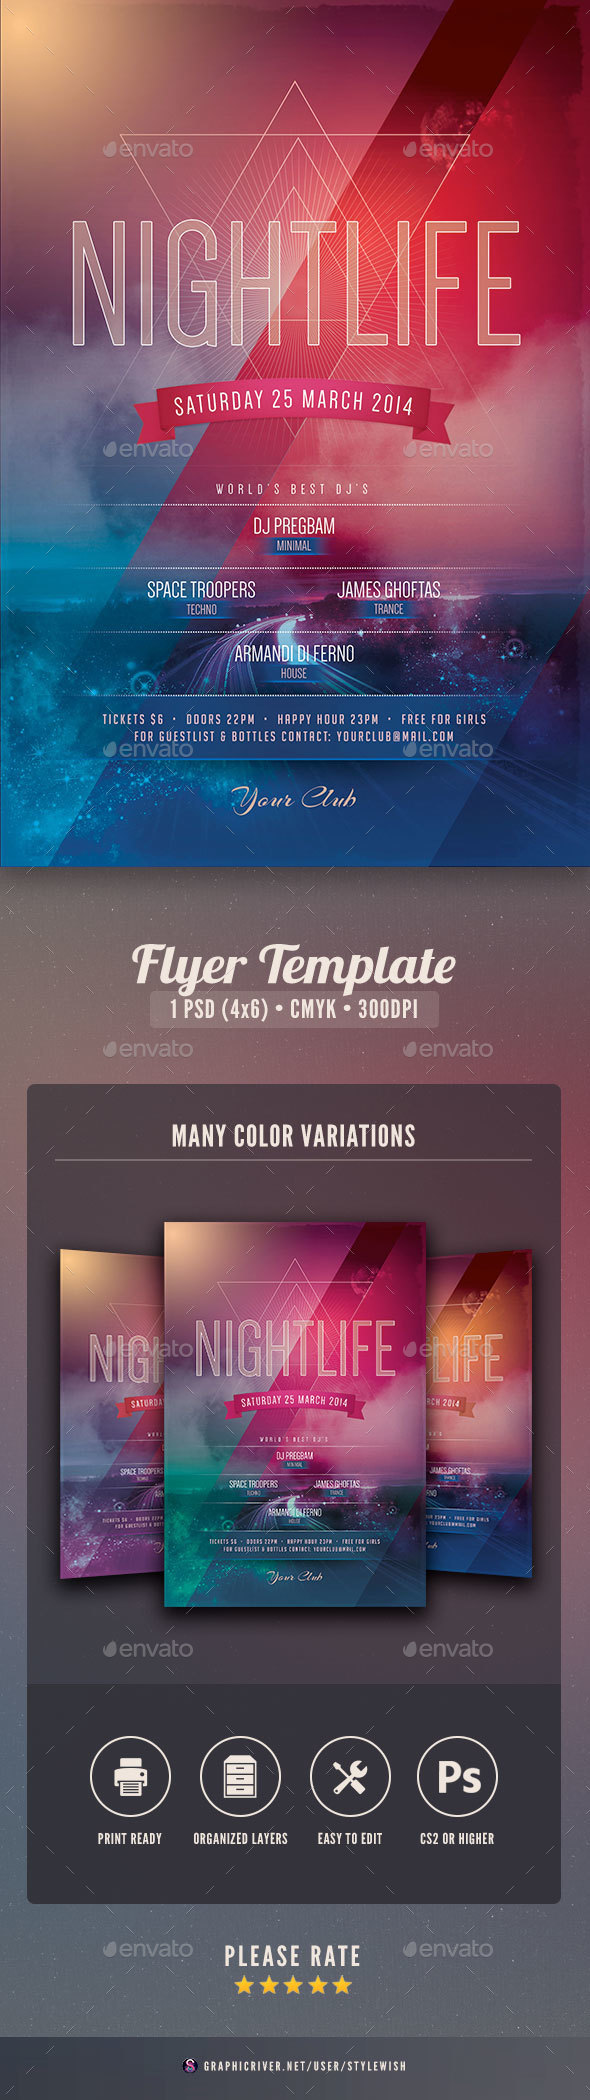 Nightlife Flyer - Clubs & Parties Events